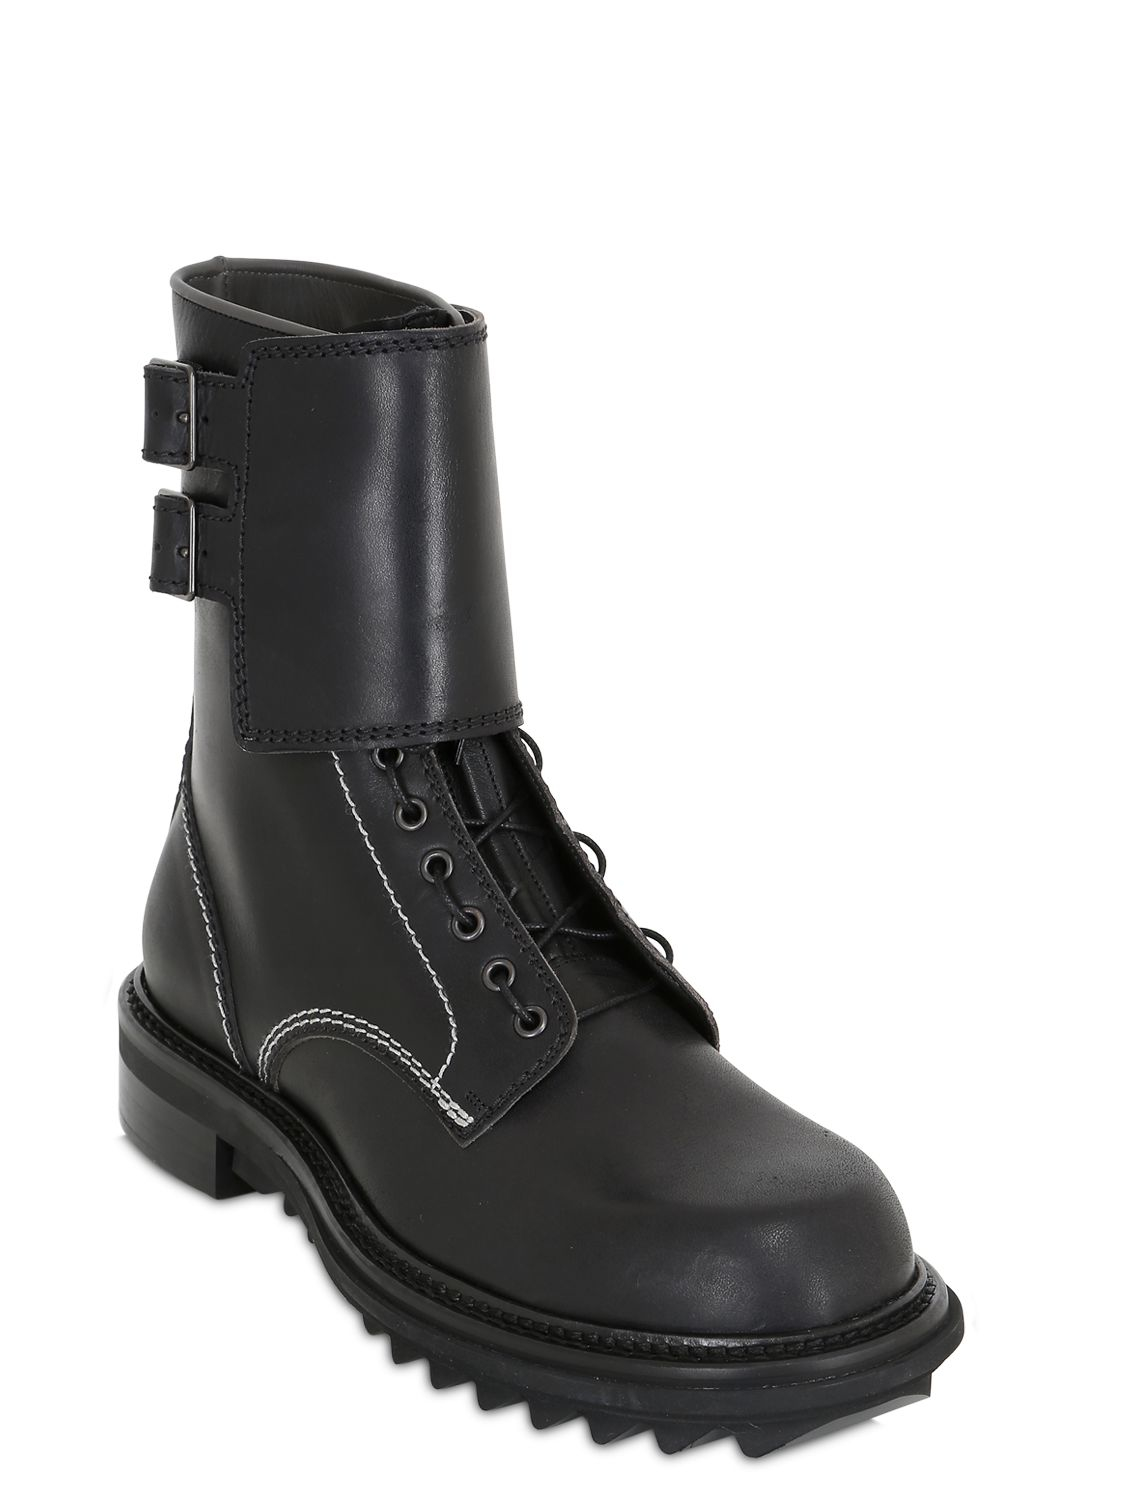 Lanvin Leather Combat Boots in Black